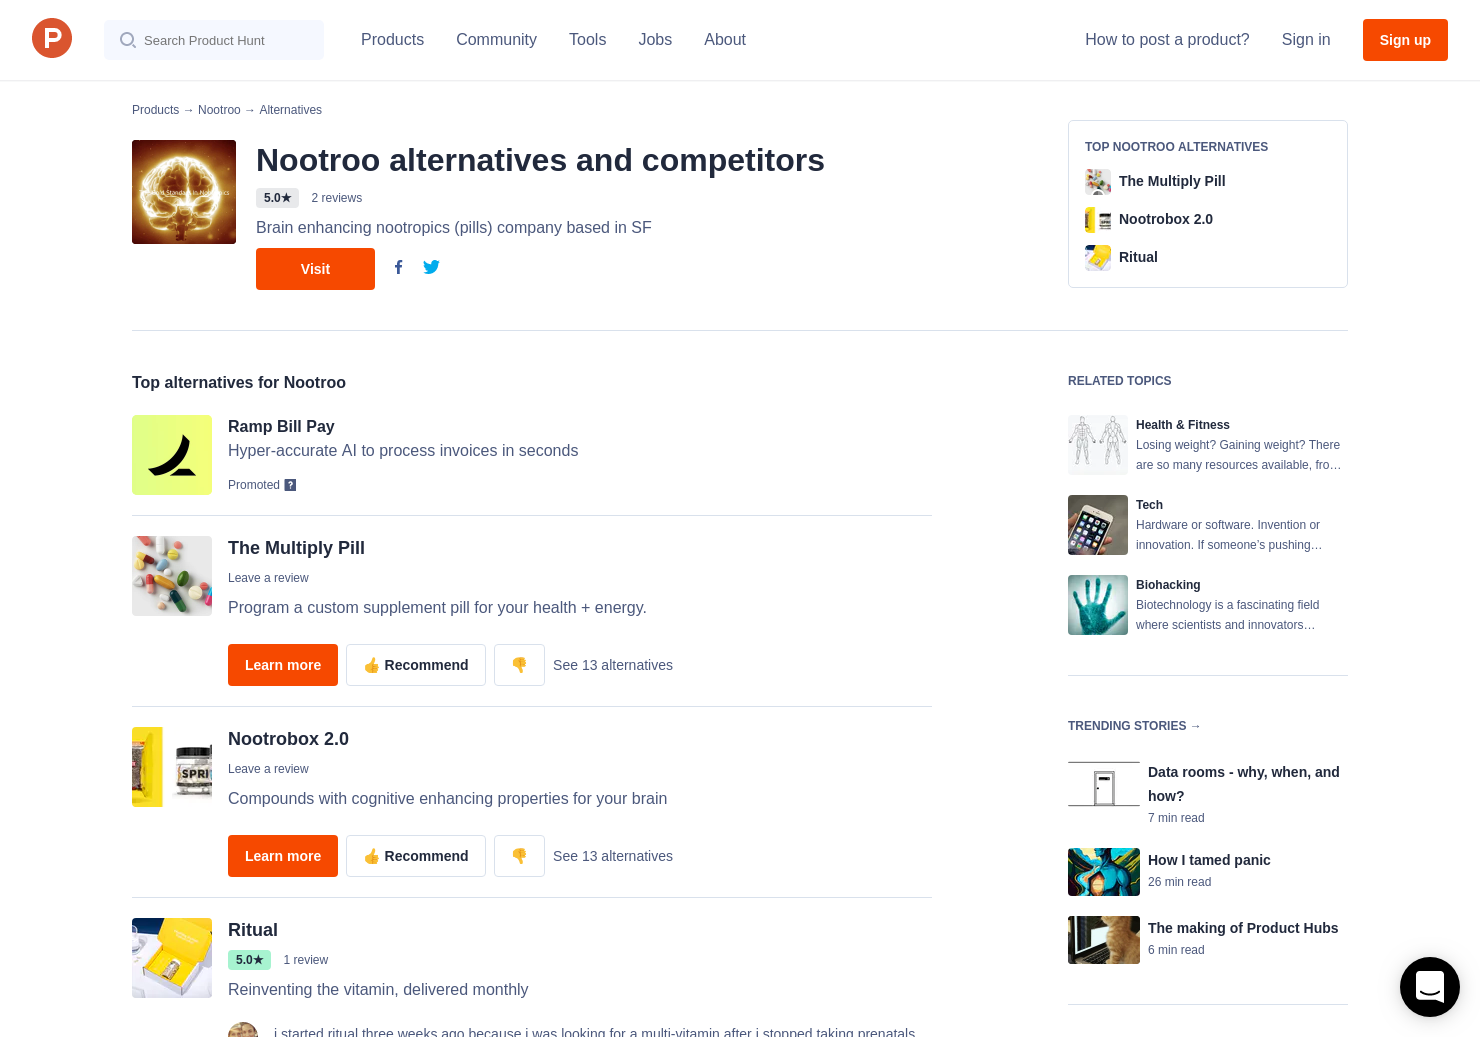 11 Alternatives To Nootroo 3 0 Product Hunt